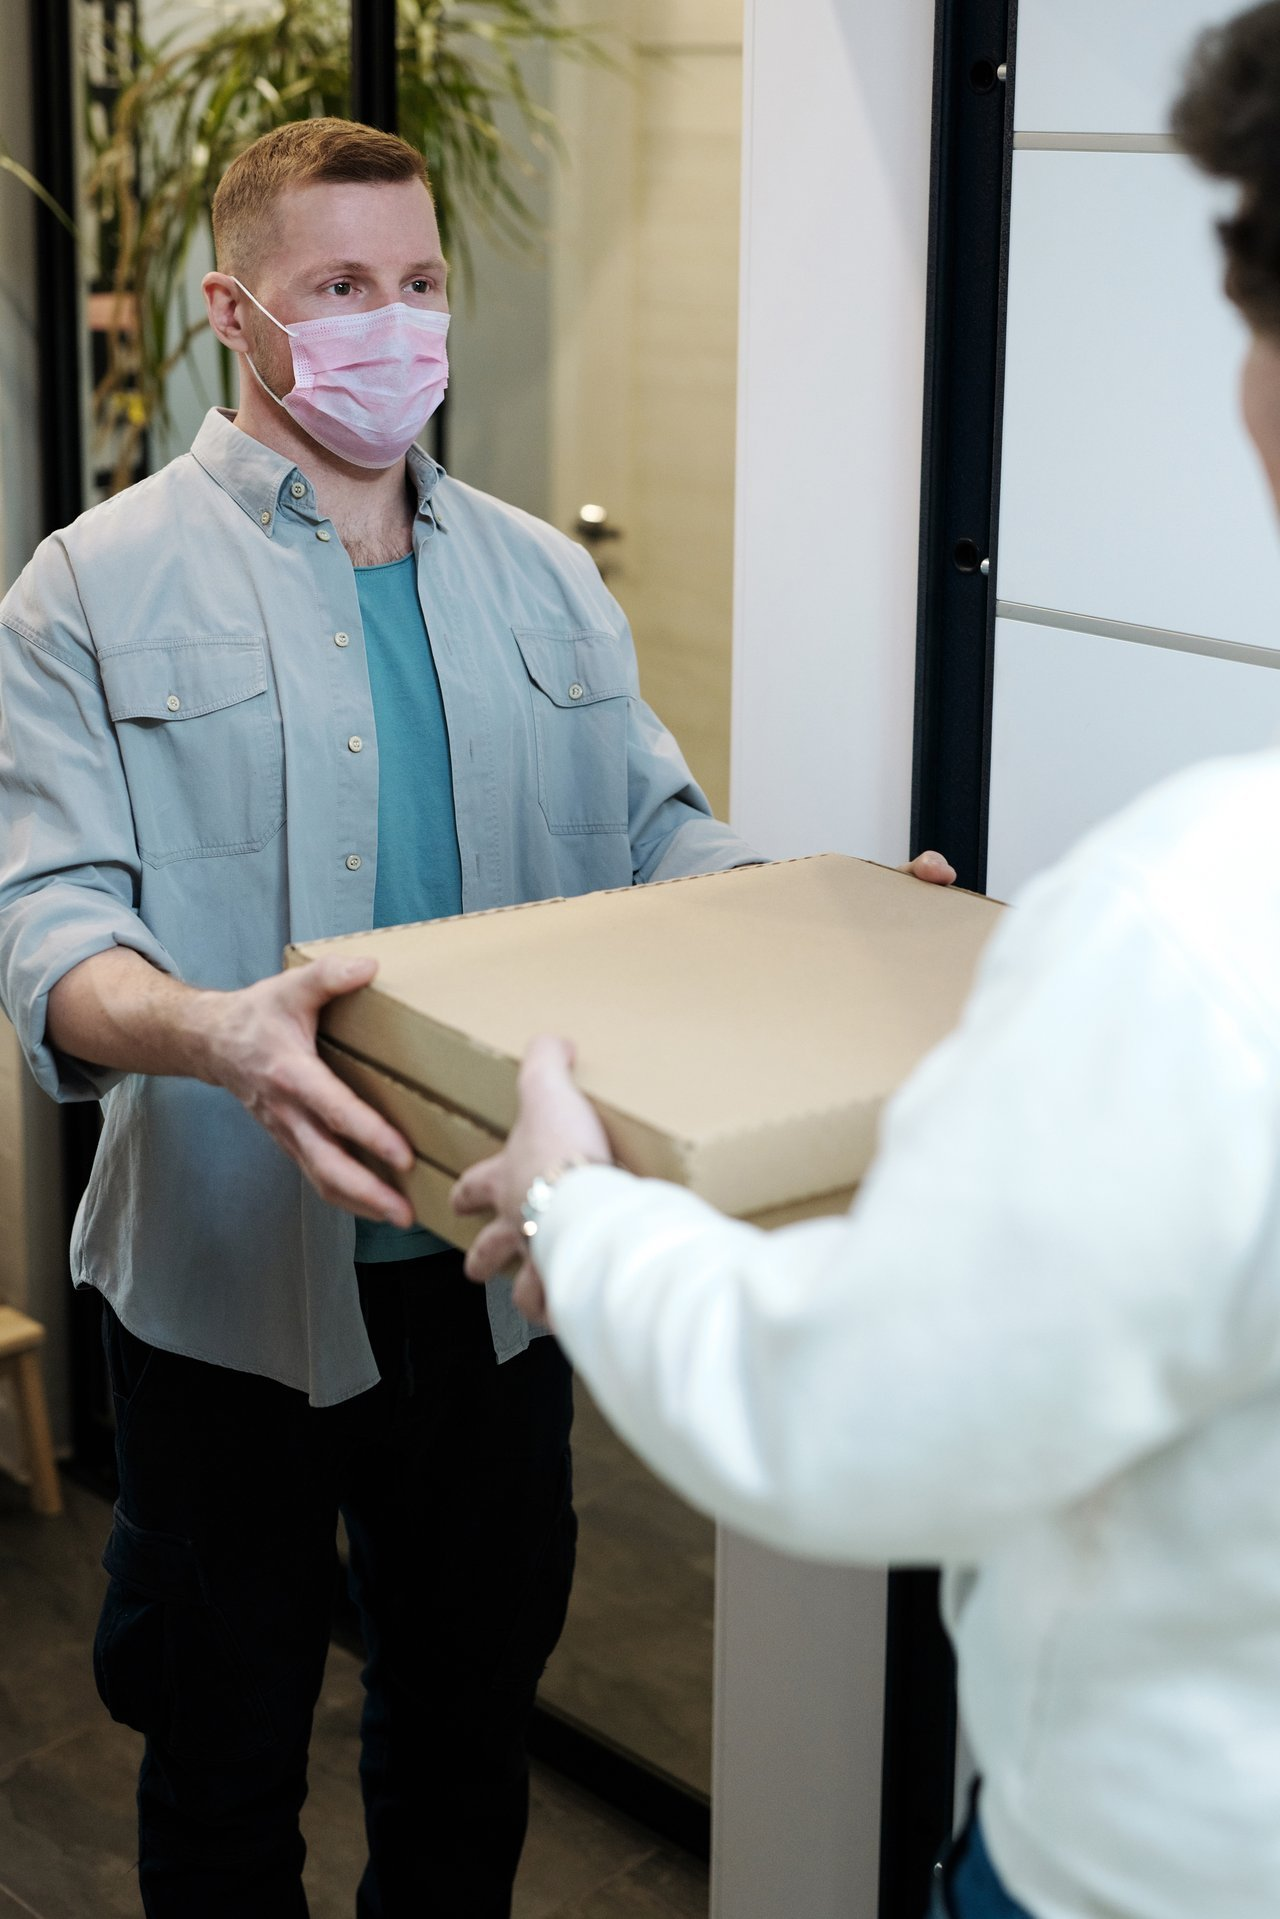 A man wearing a face mask receiving a Pizza delivery | Photo: Pexels